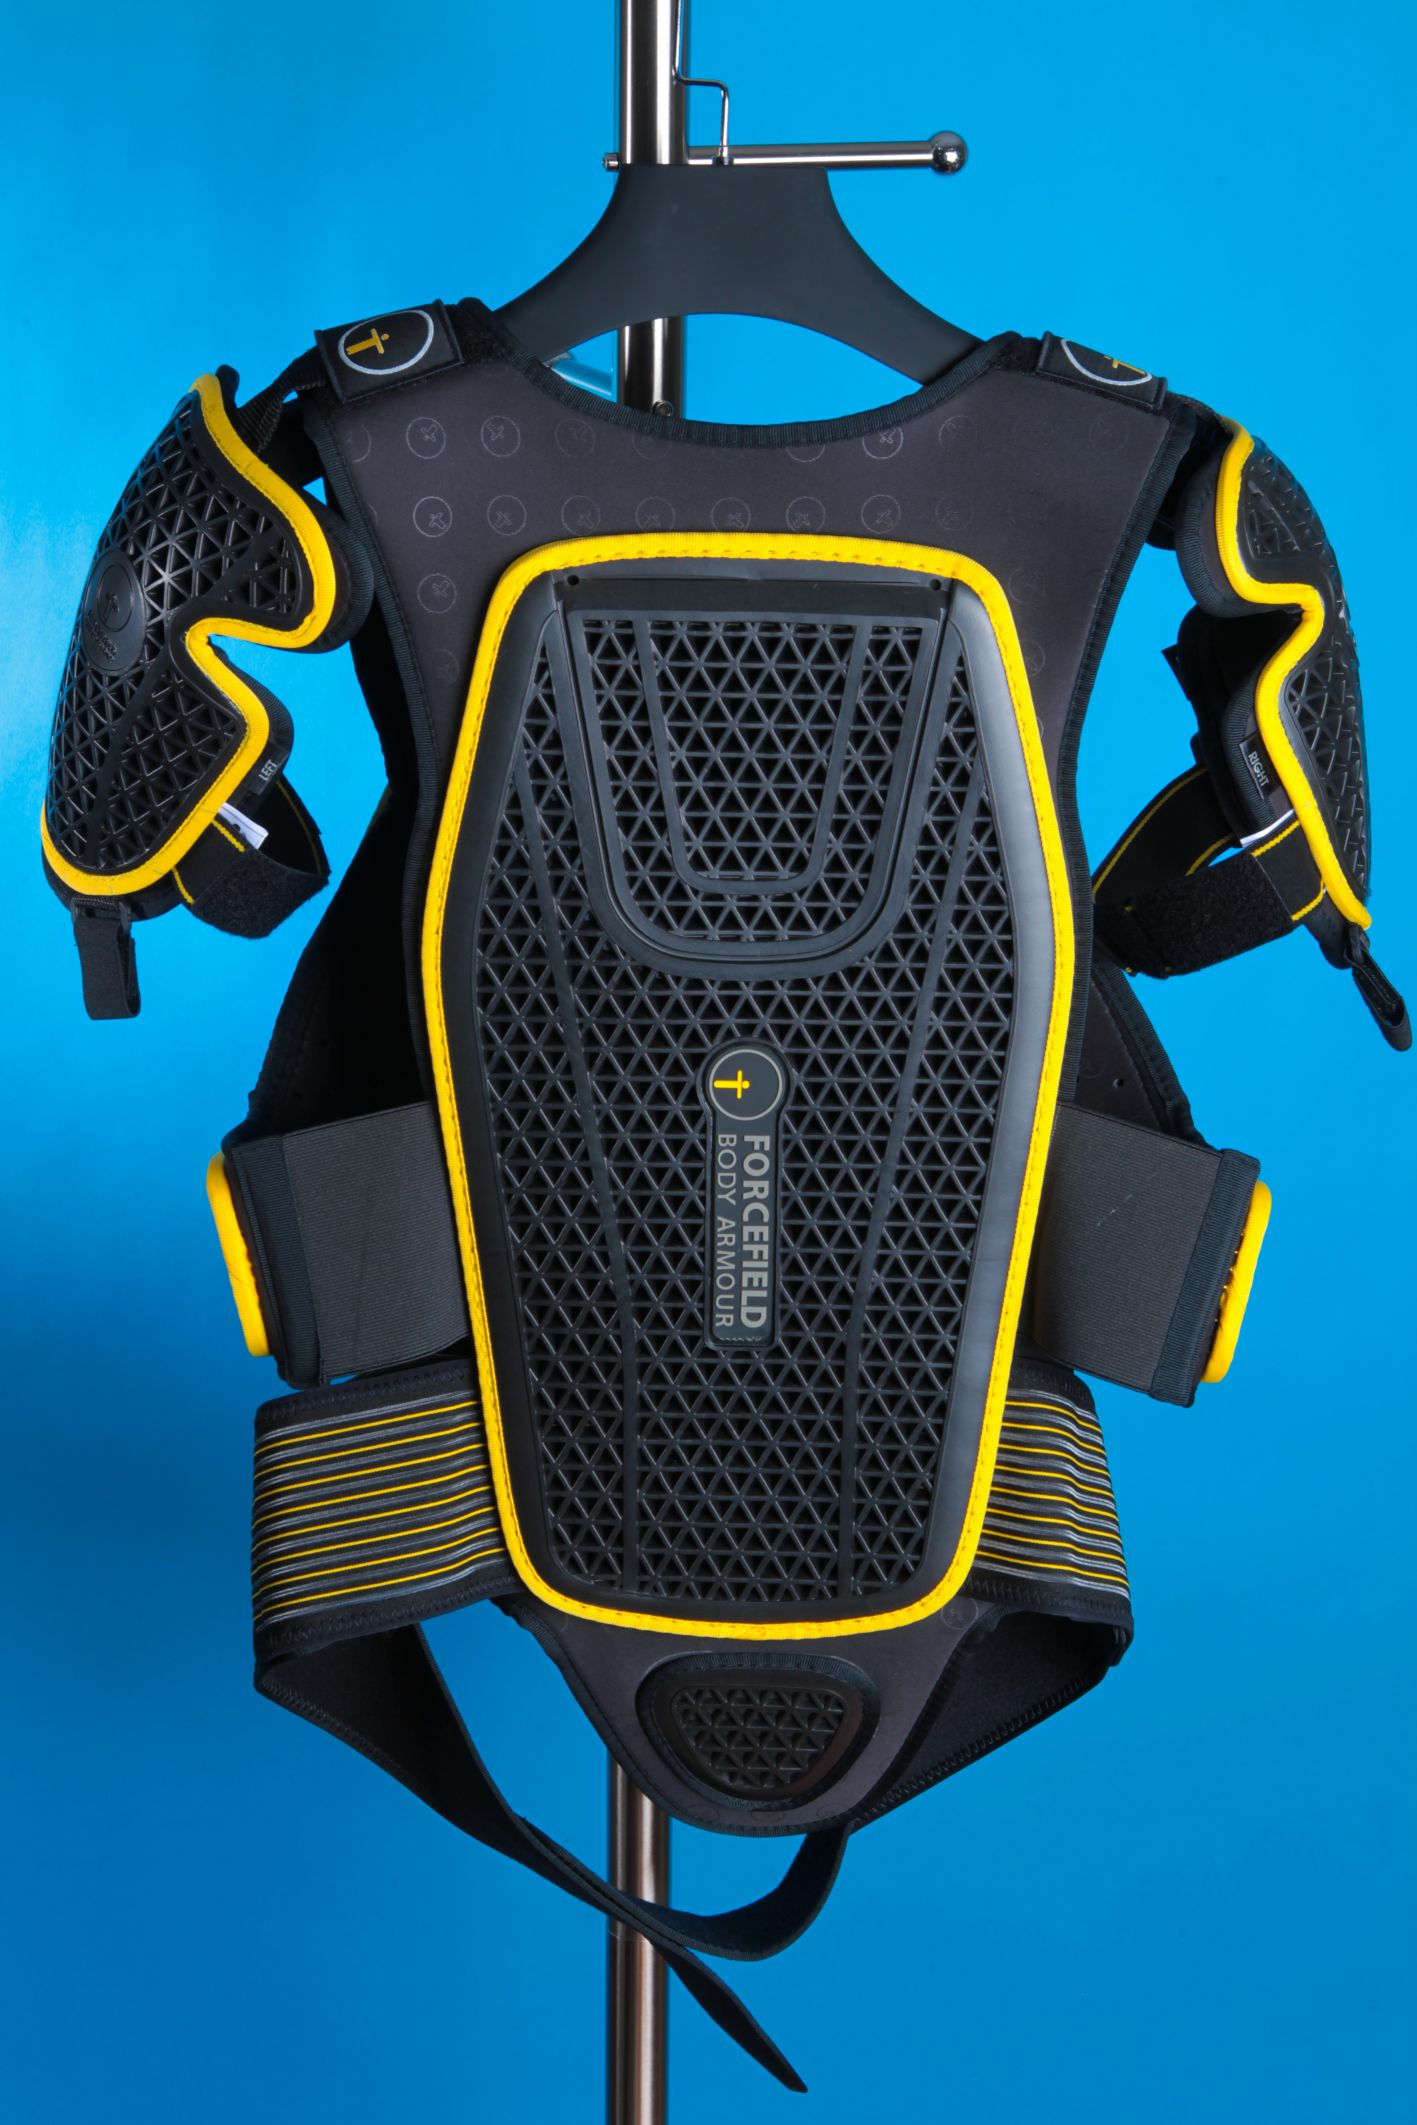 Forcefield Pro Vest X V And Ex K Harness Visordown